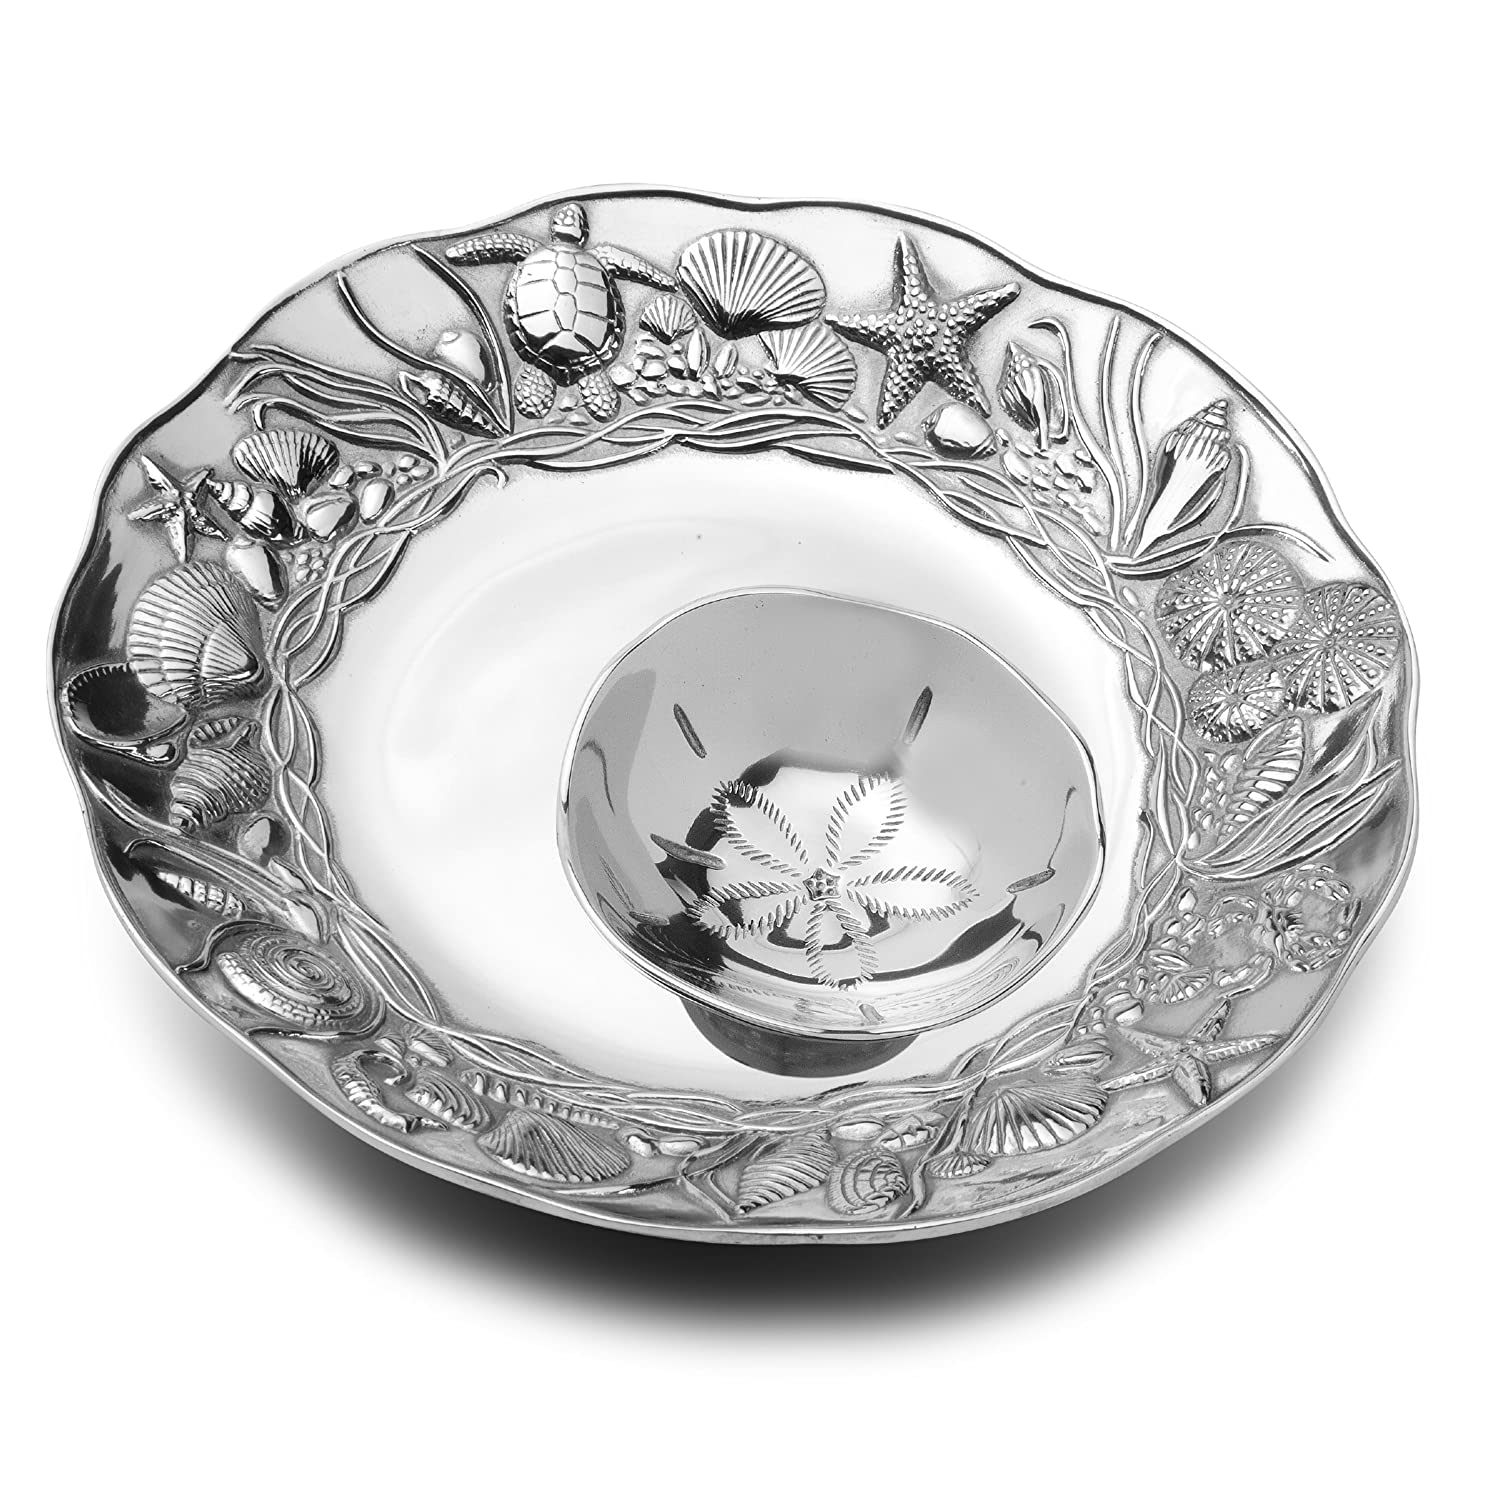 Coastal Christmas Tablescape Décor - Coastal 2-piece chip and dip serving set by Designer Wilton Armetale